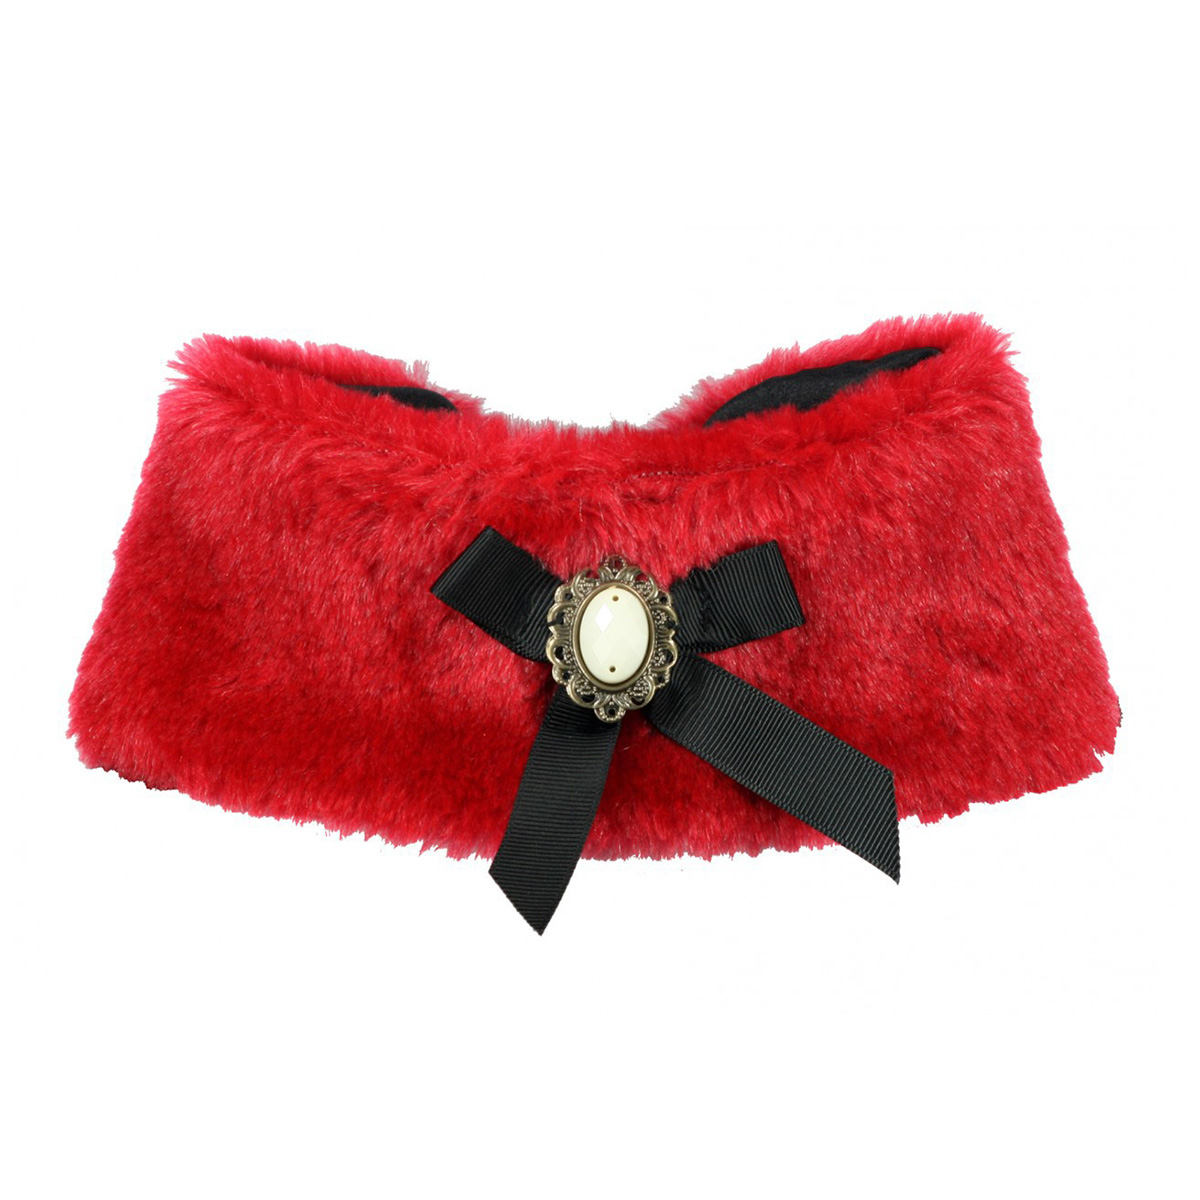 Luxurious Fur Dog Cape by Hip Doggie - Red